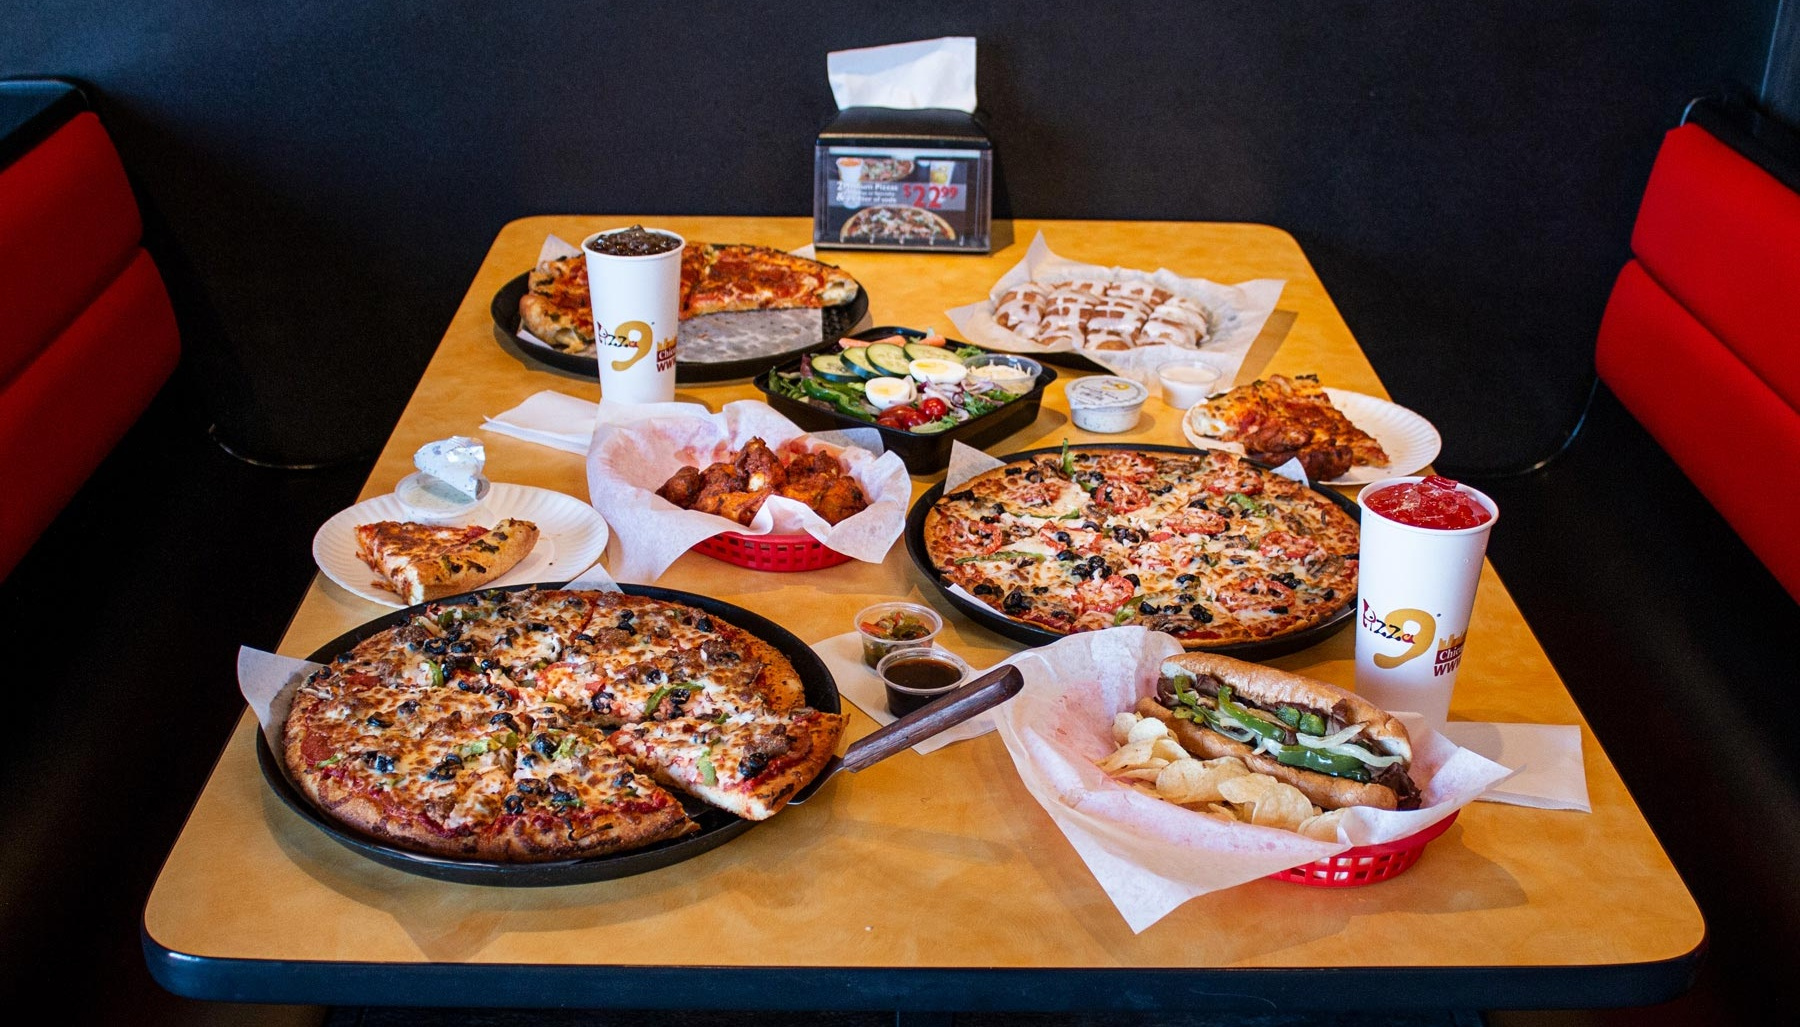 Pizza 9 Meal-  Add a little variety to your meal, order now from your local Pizza 9 restaurant!